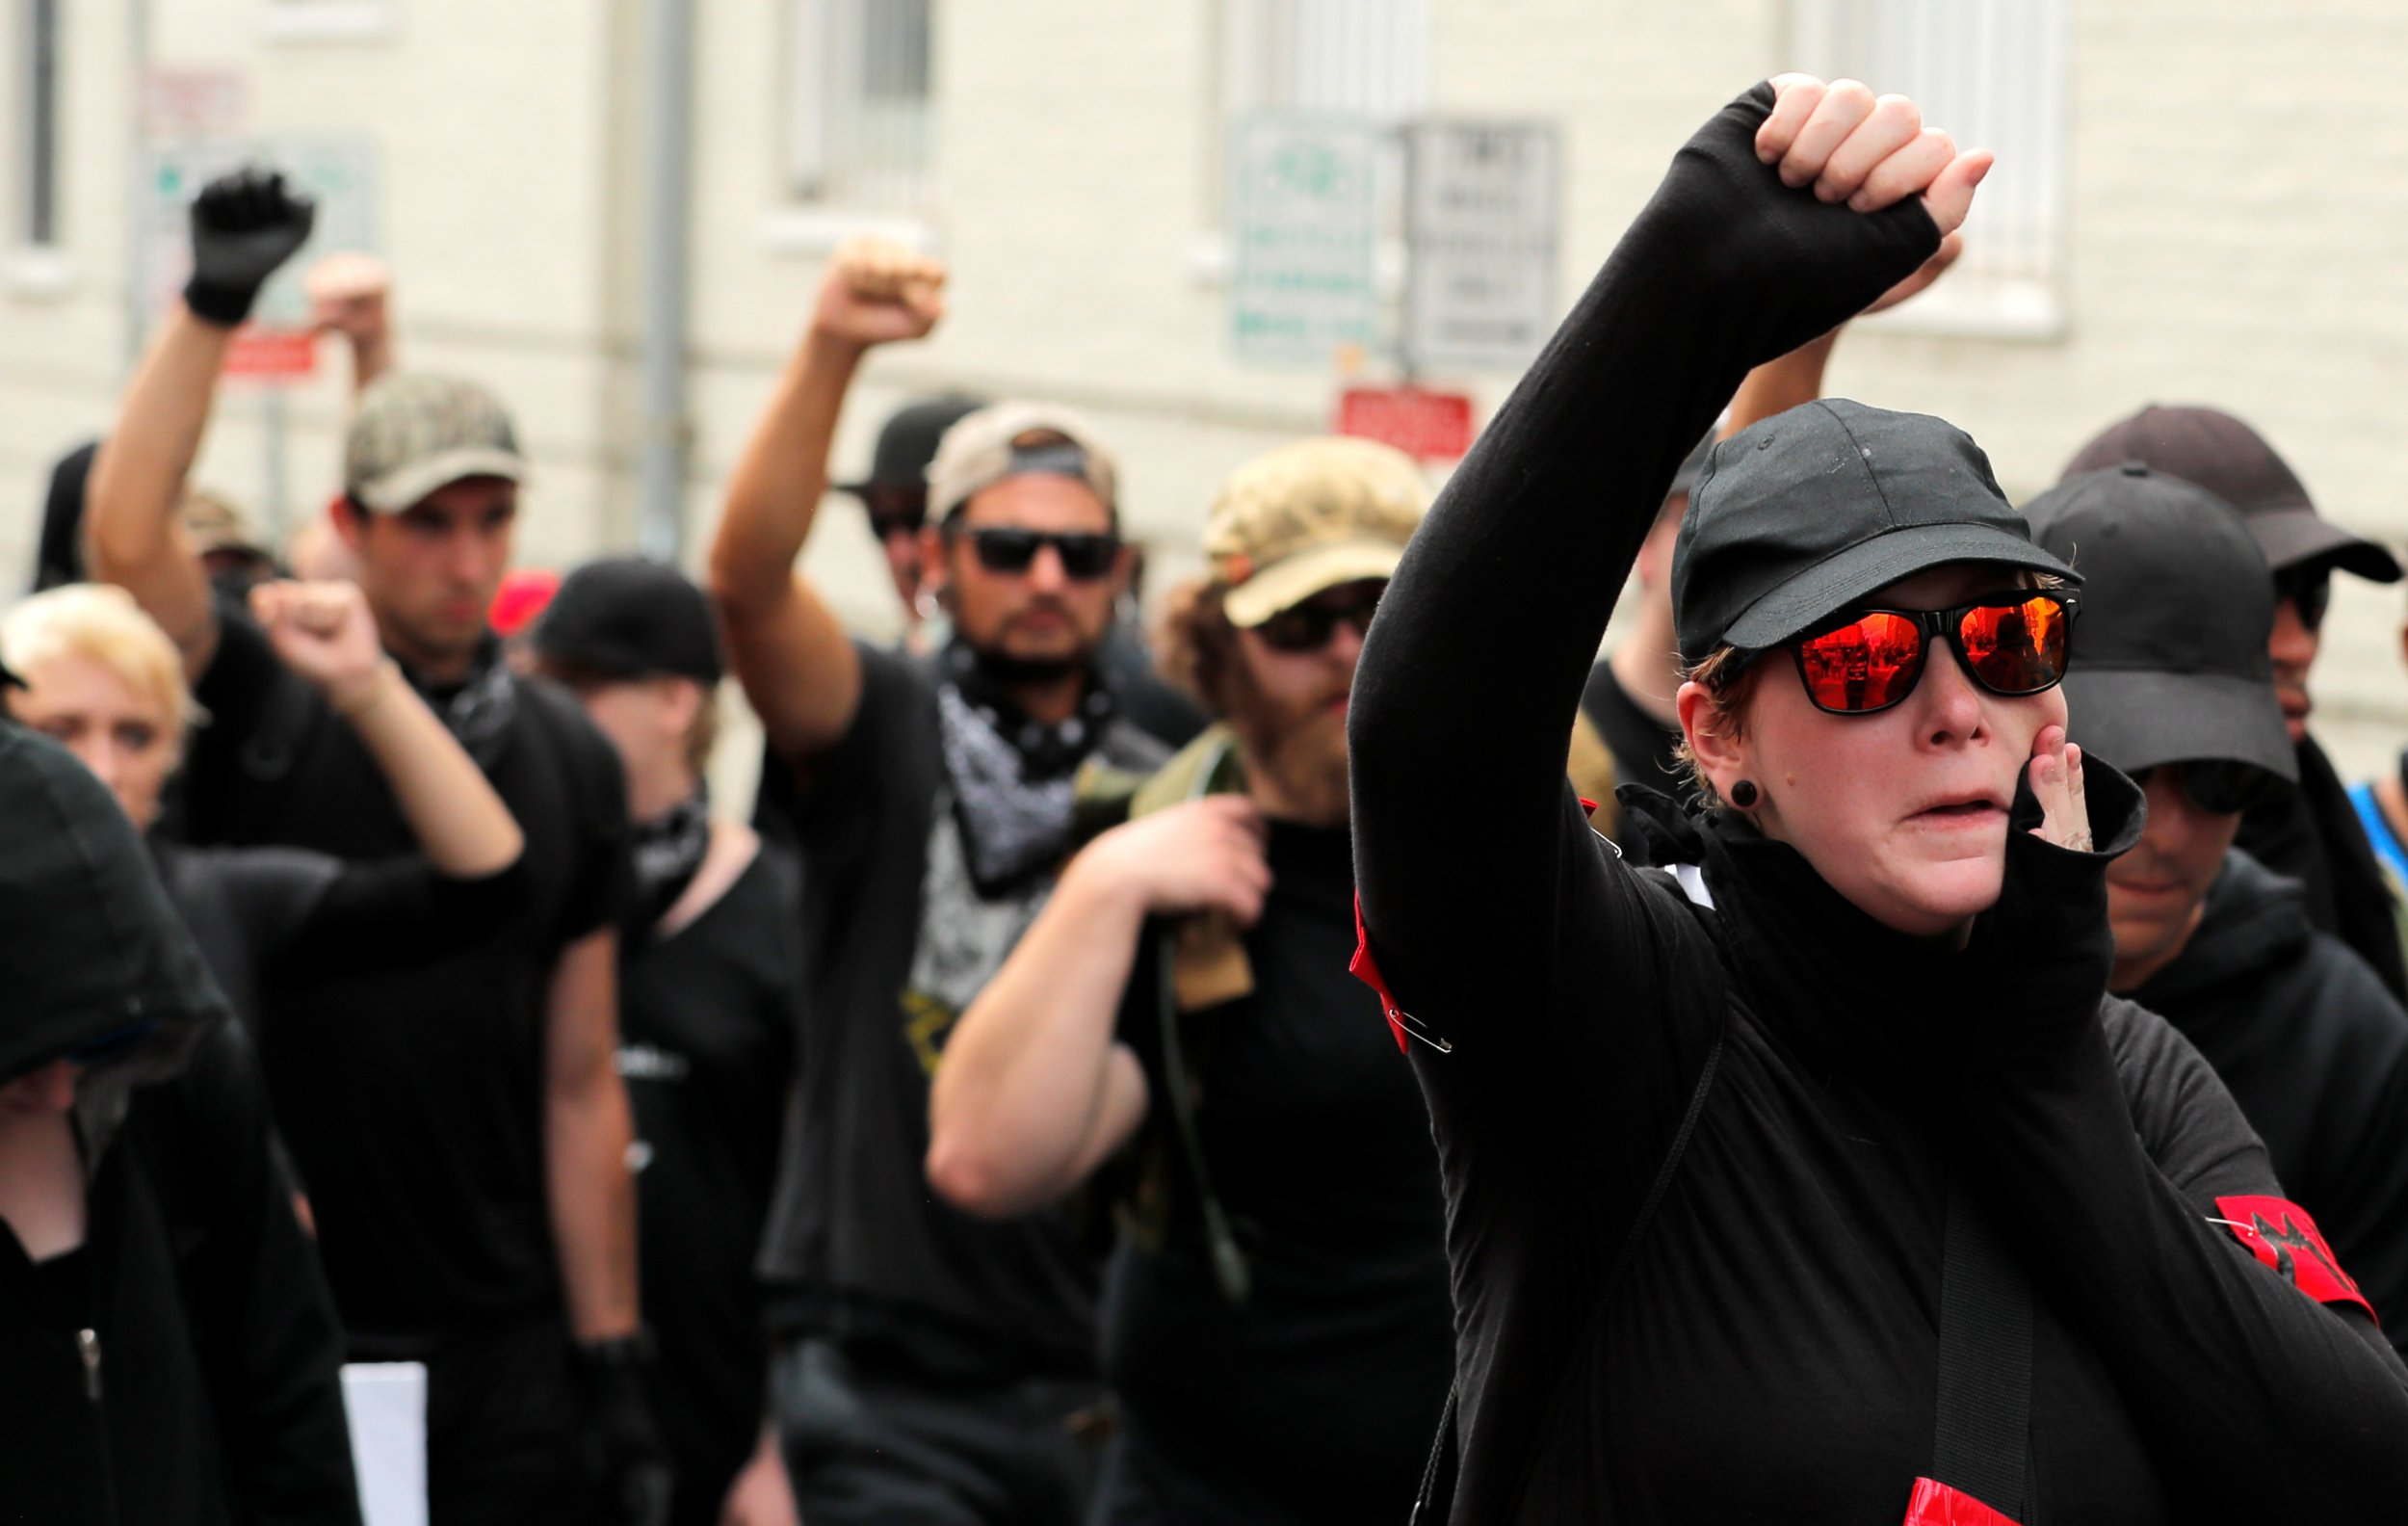 """An Antifa activist compared ICE with """"shadowy Gestapo agents"""" and called for fighting with """"fire and justice"""""""